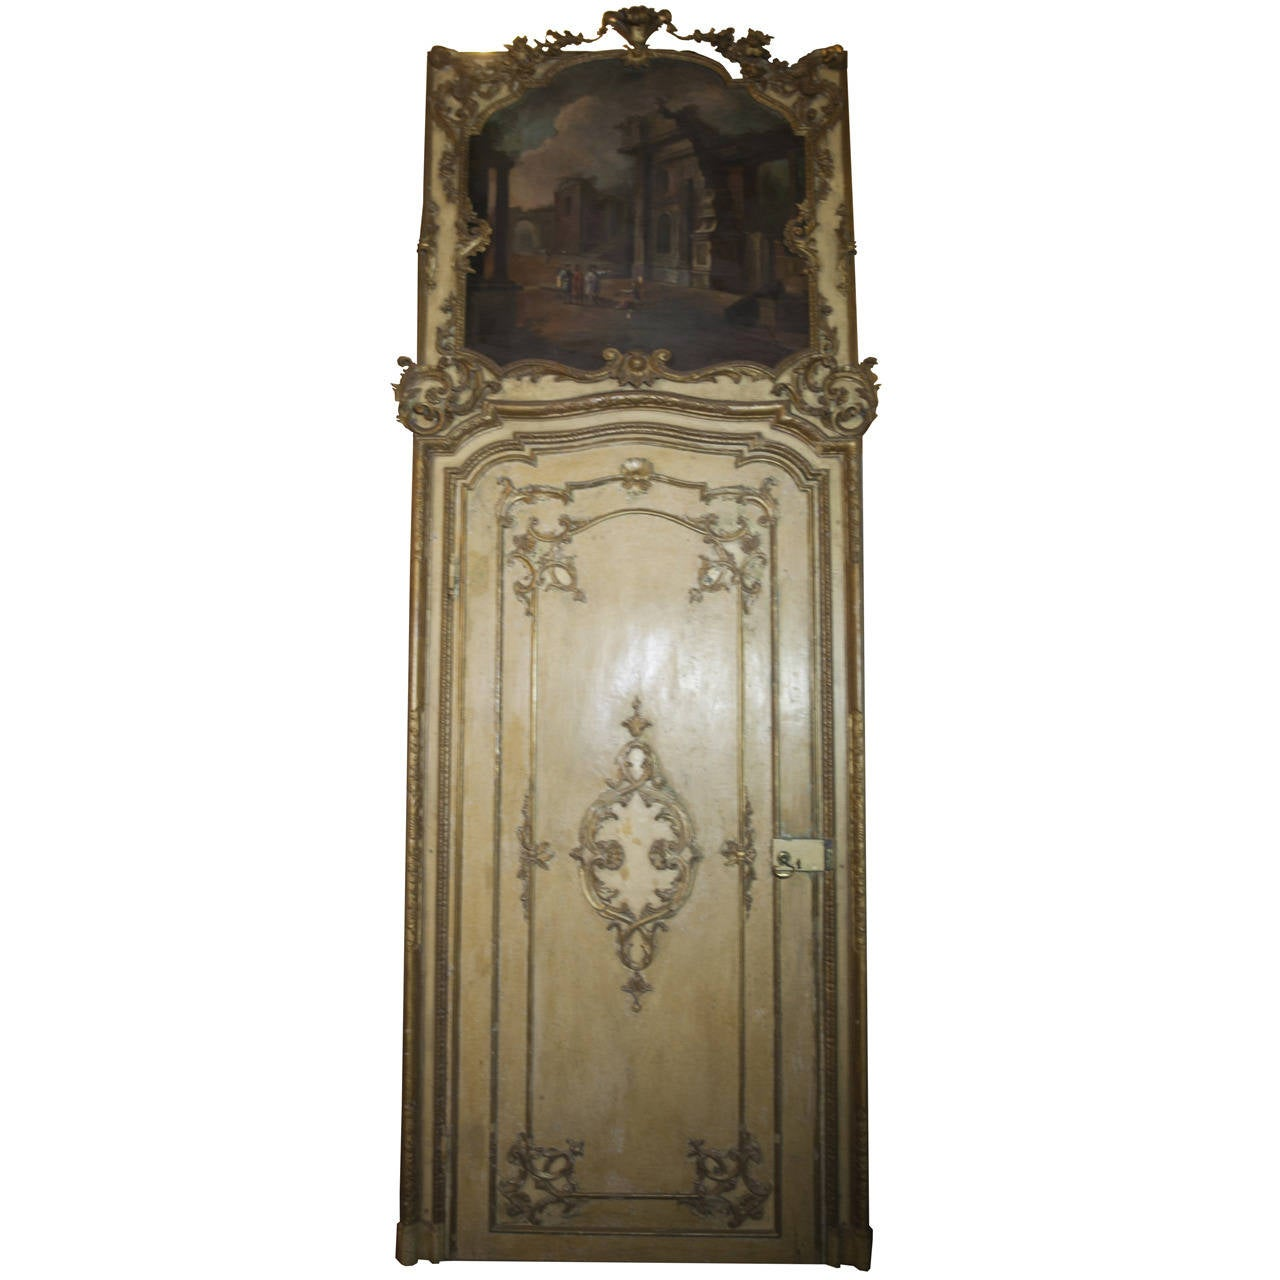 Antique baroque door refined with gold for sale at 1stdibs for Baroque glass door